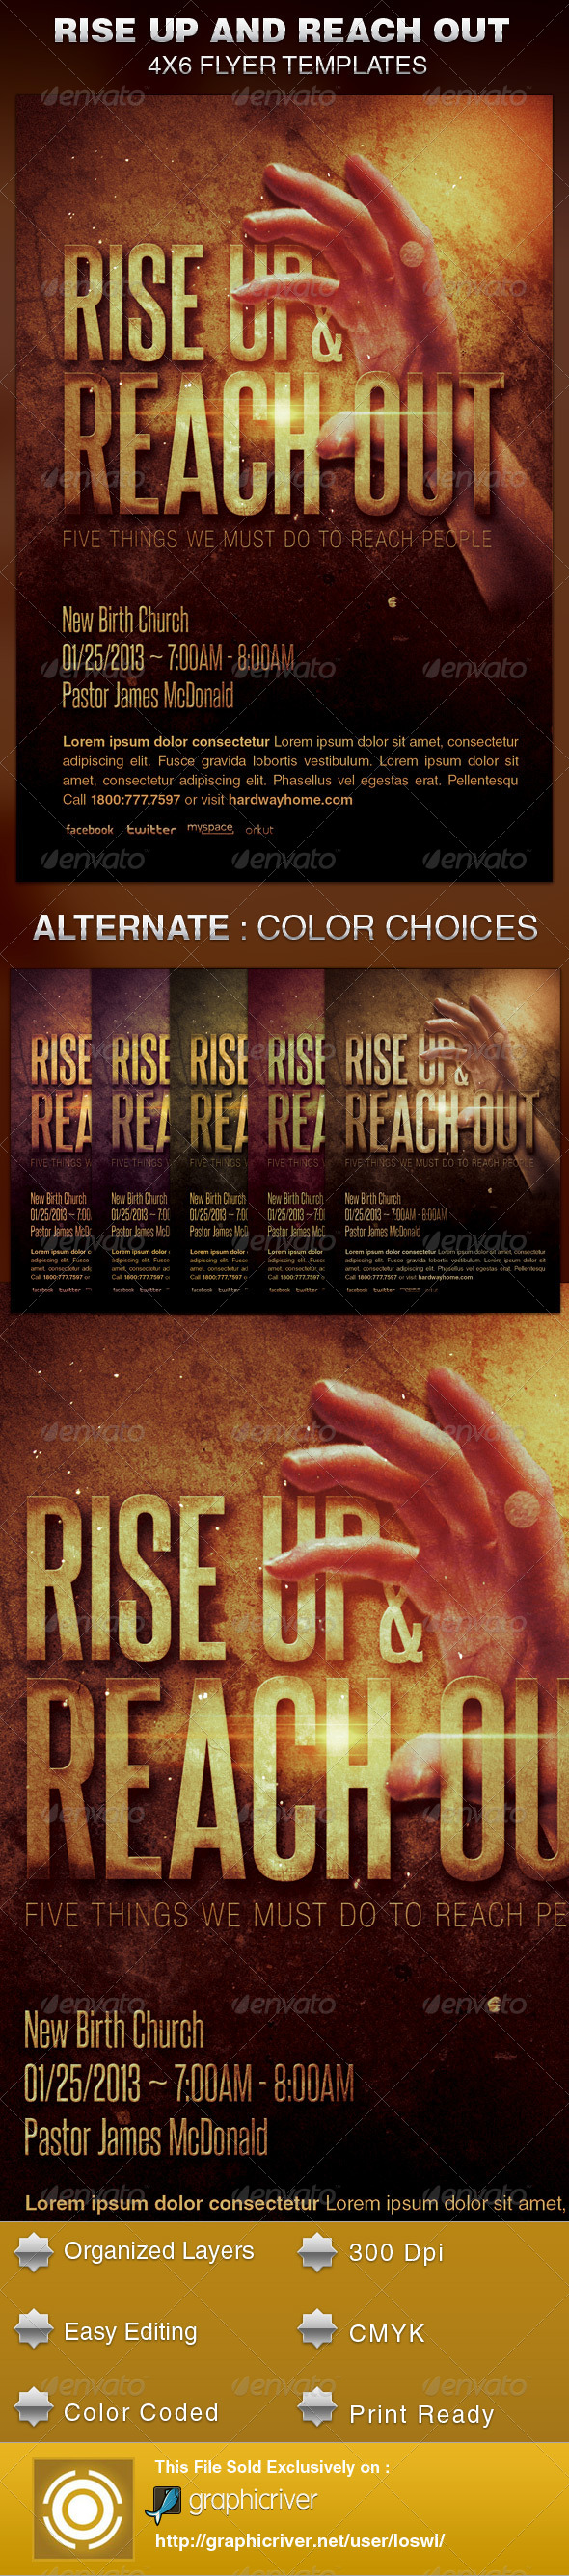 Rise Up and Reach Out Church Flyer Template - Church Flyers